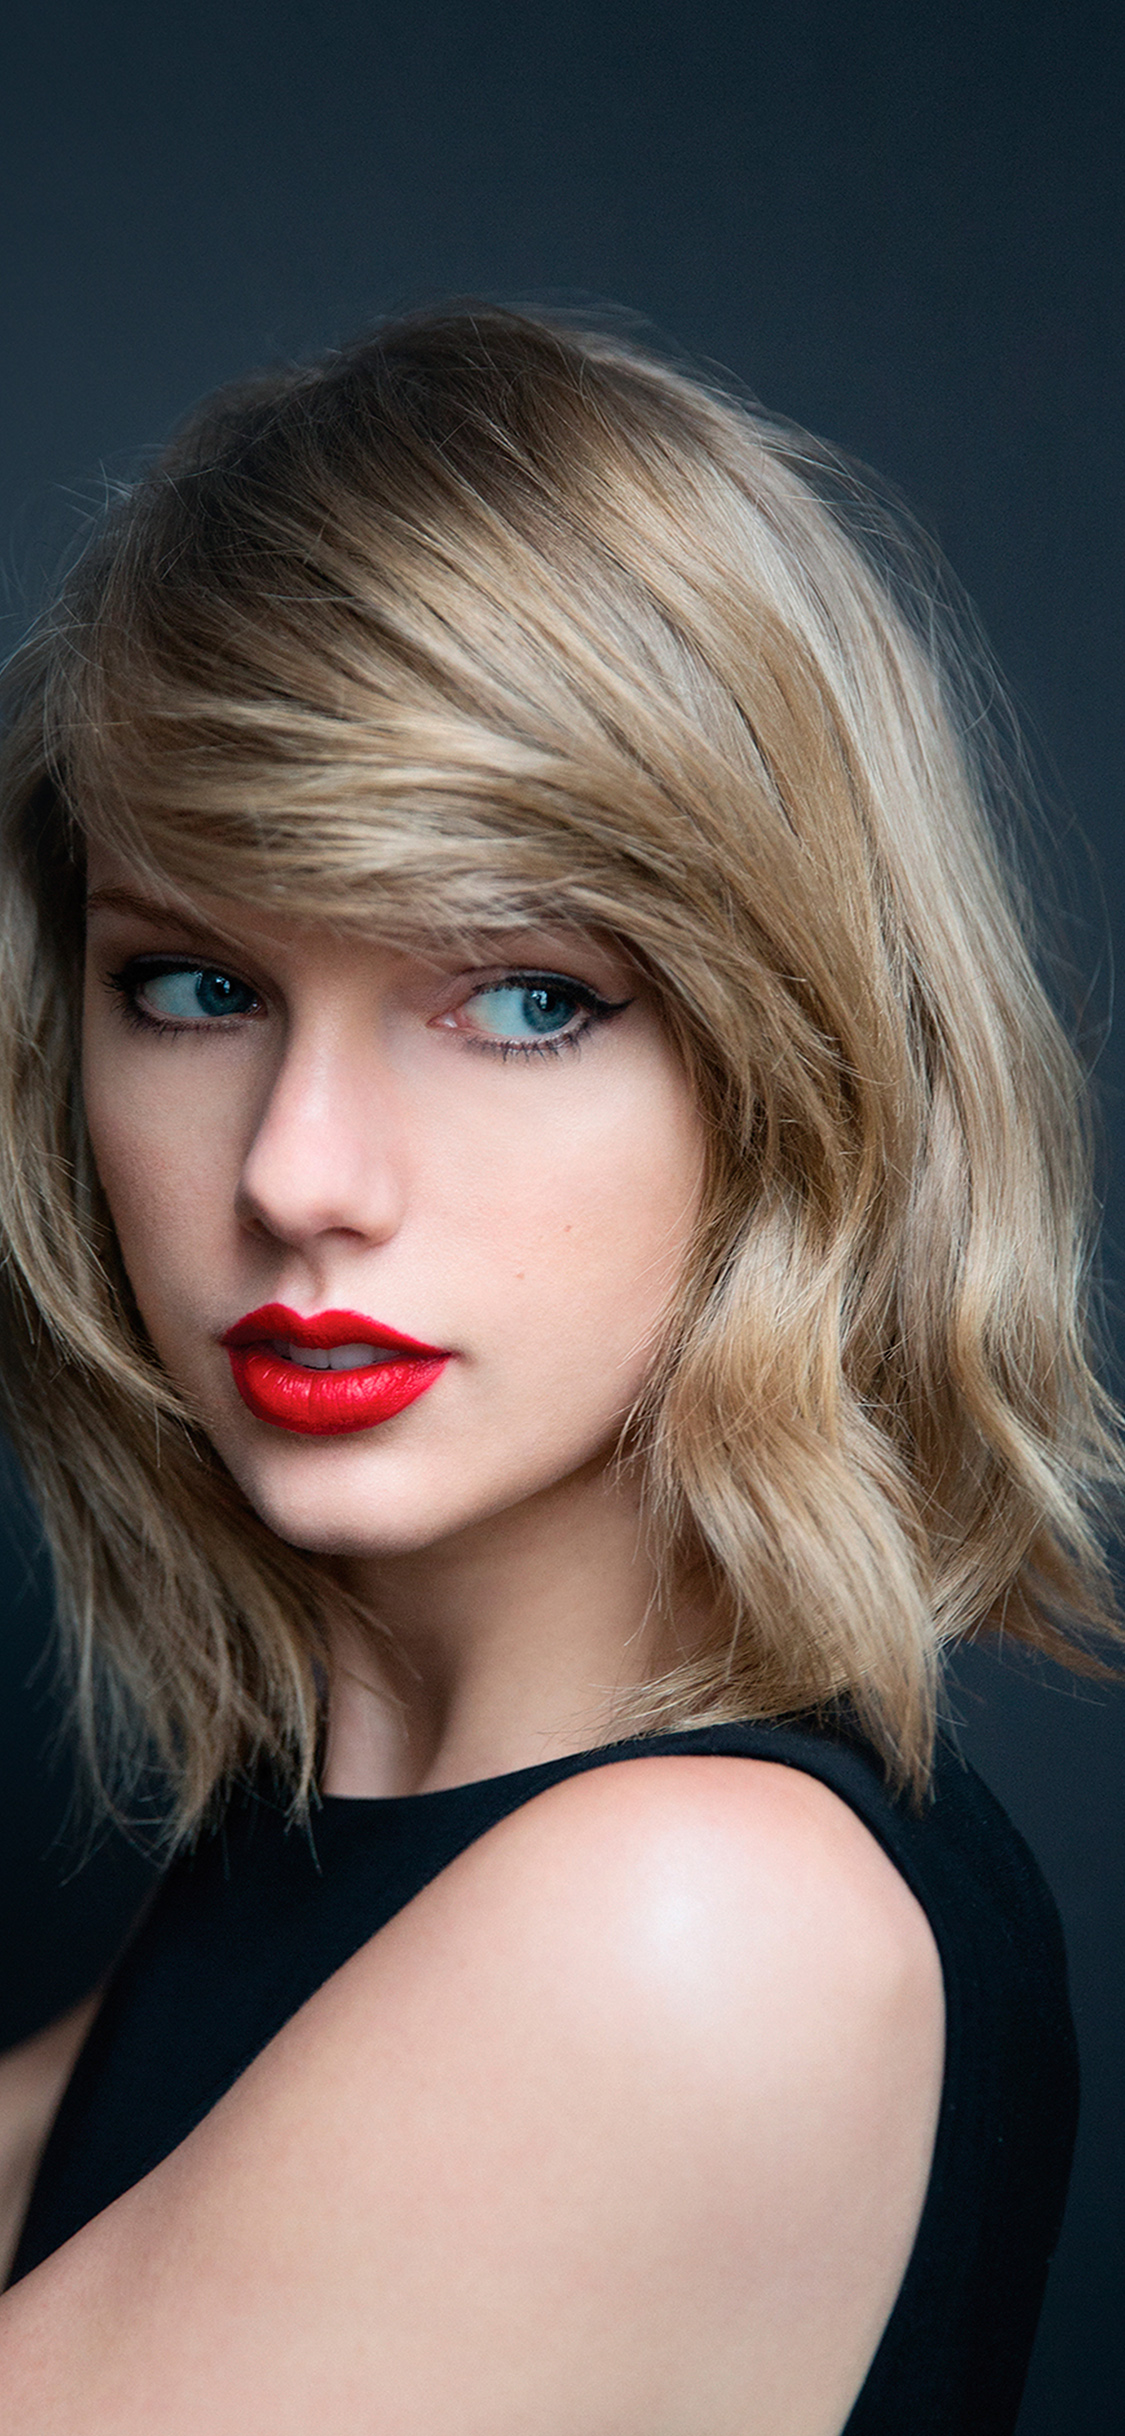 iPhoneXpapers.com-Apple-iPhone-wallpaper-hj10-taylor-swift-artist-celebrity-girl